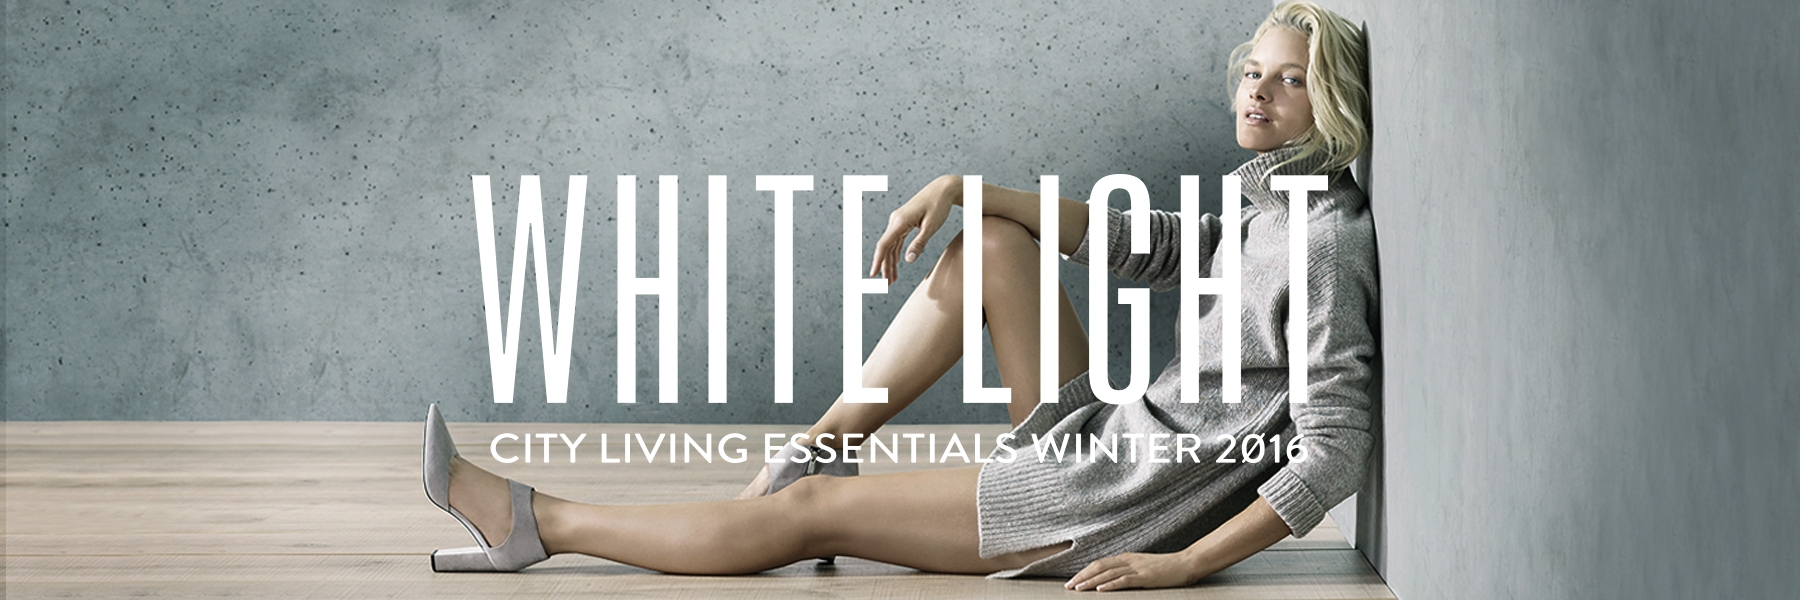 Wittner Winter 2016 Advertising Campaign - White light positioning